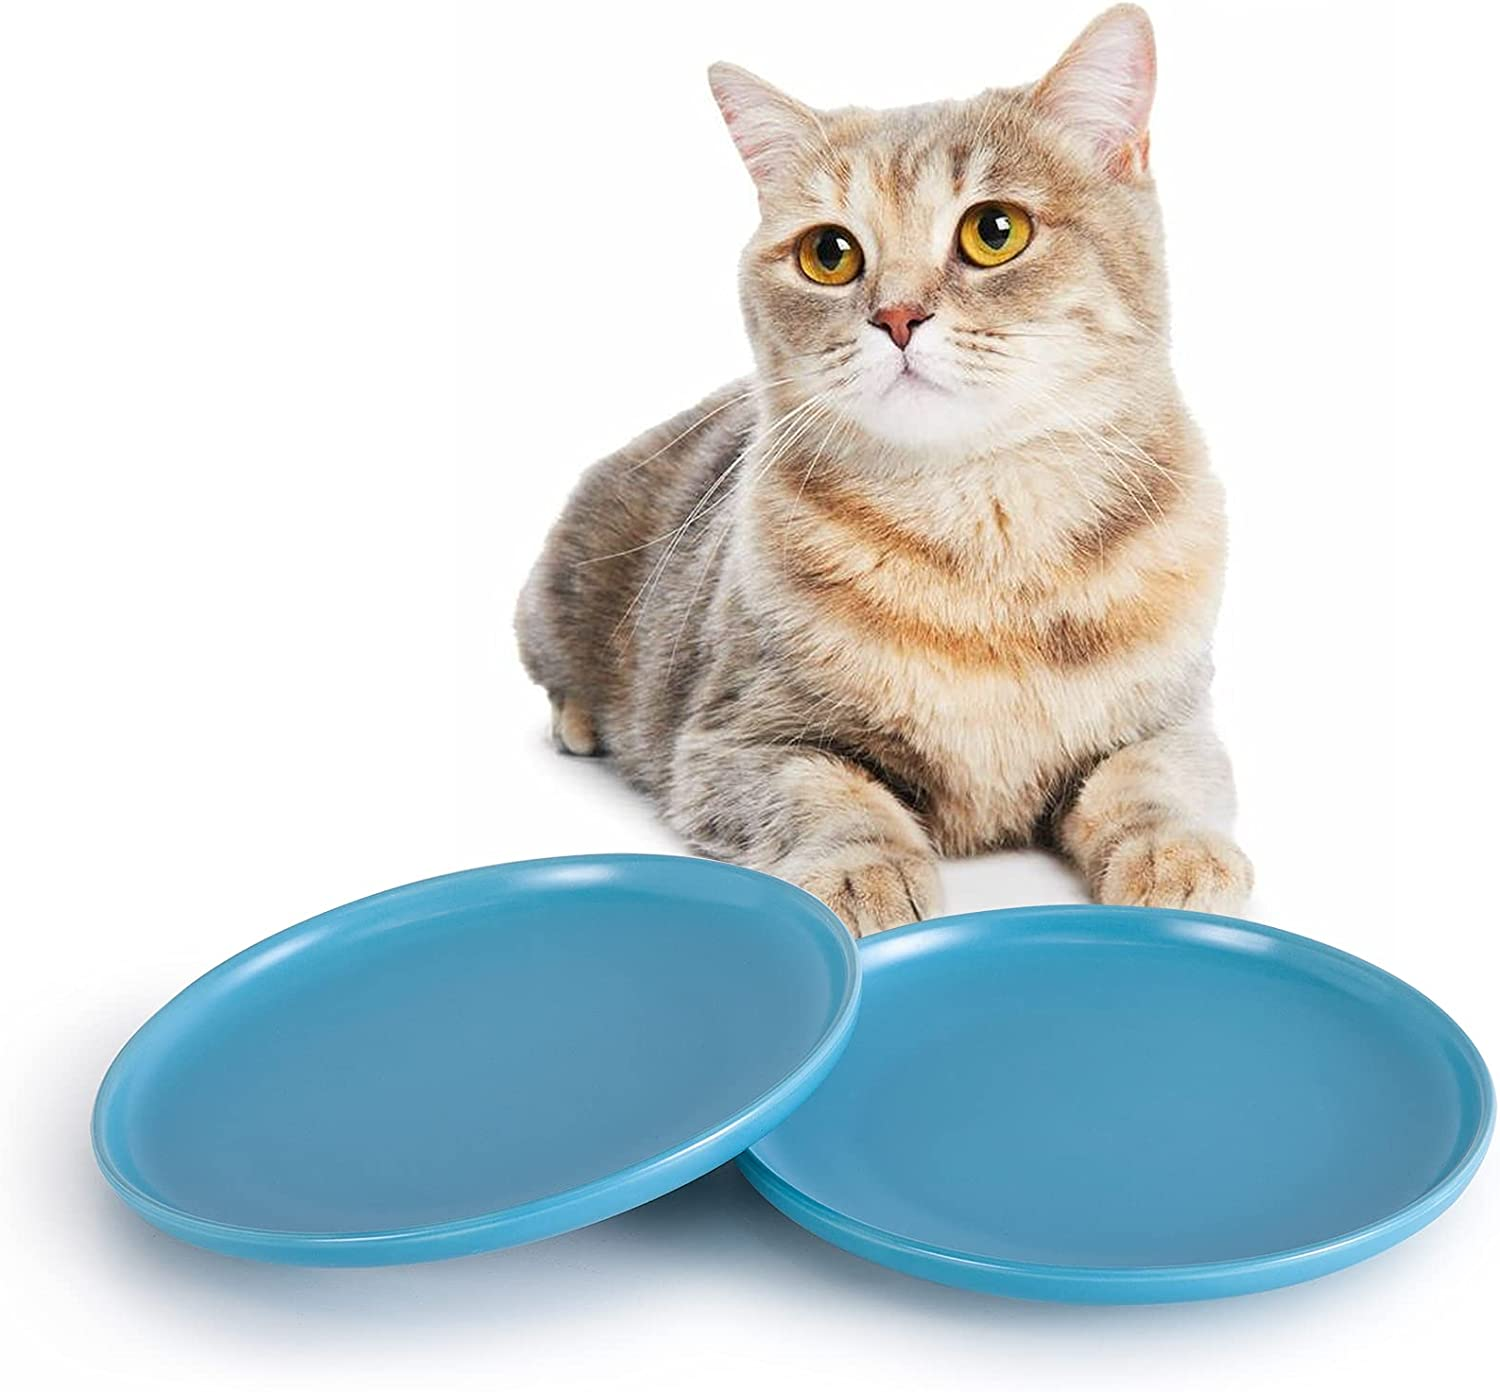 SIDUCAL Ceramic Shallow Cat Dish,8 Inch High-Capacity Non Slip Wide Cat Food Bowls,Whisker Fatigue Free Cat Food Dish,Cute Pet Plate for Cat,Dishwasher Safe(Sky Blue-2 Packs)